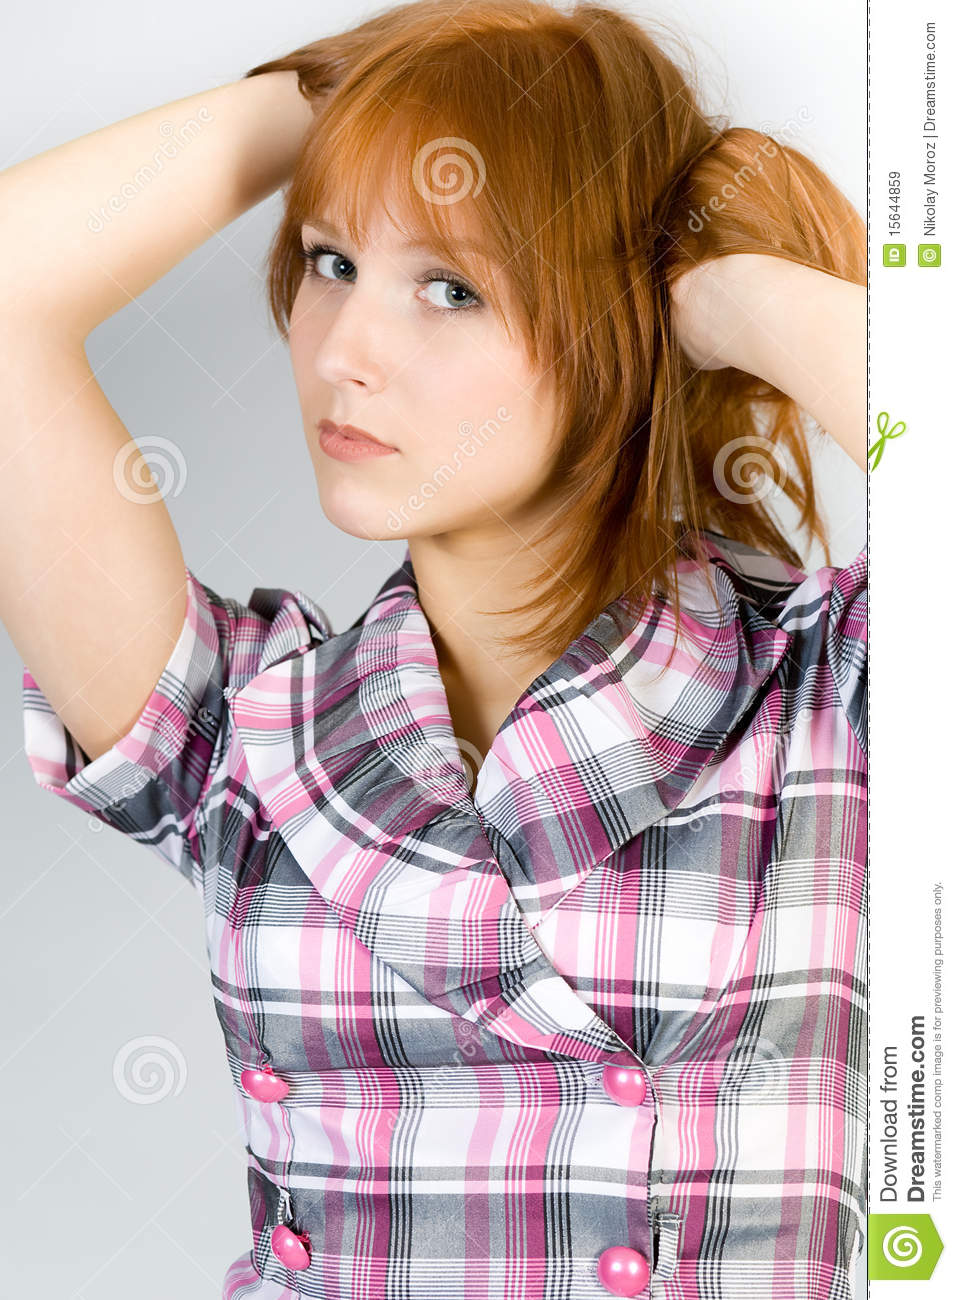 Studio Portrait Of The Beautiful Girl Stock Image - Image of ...